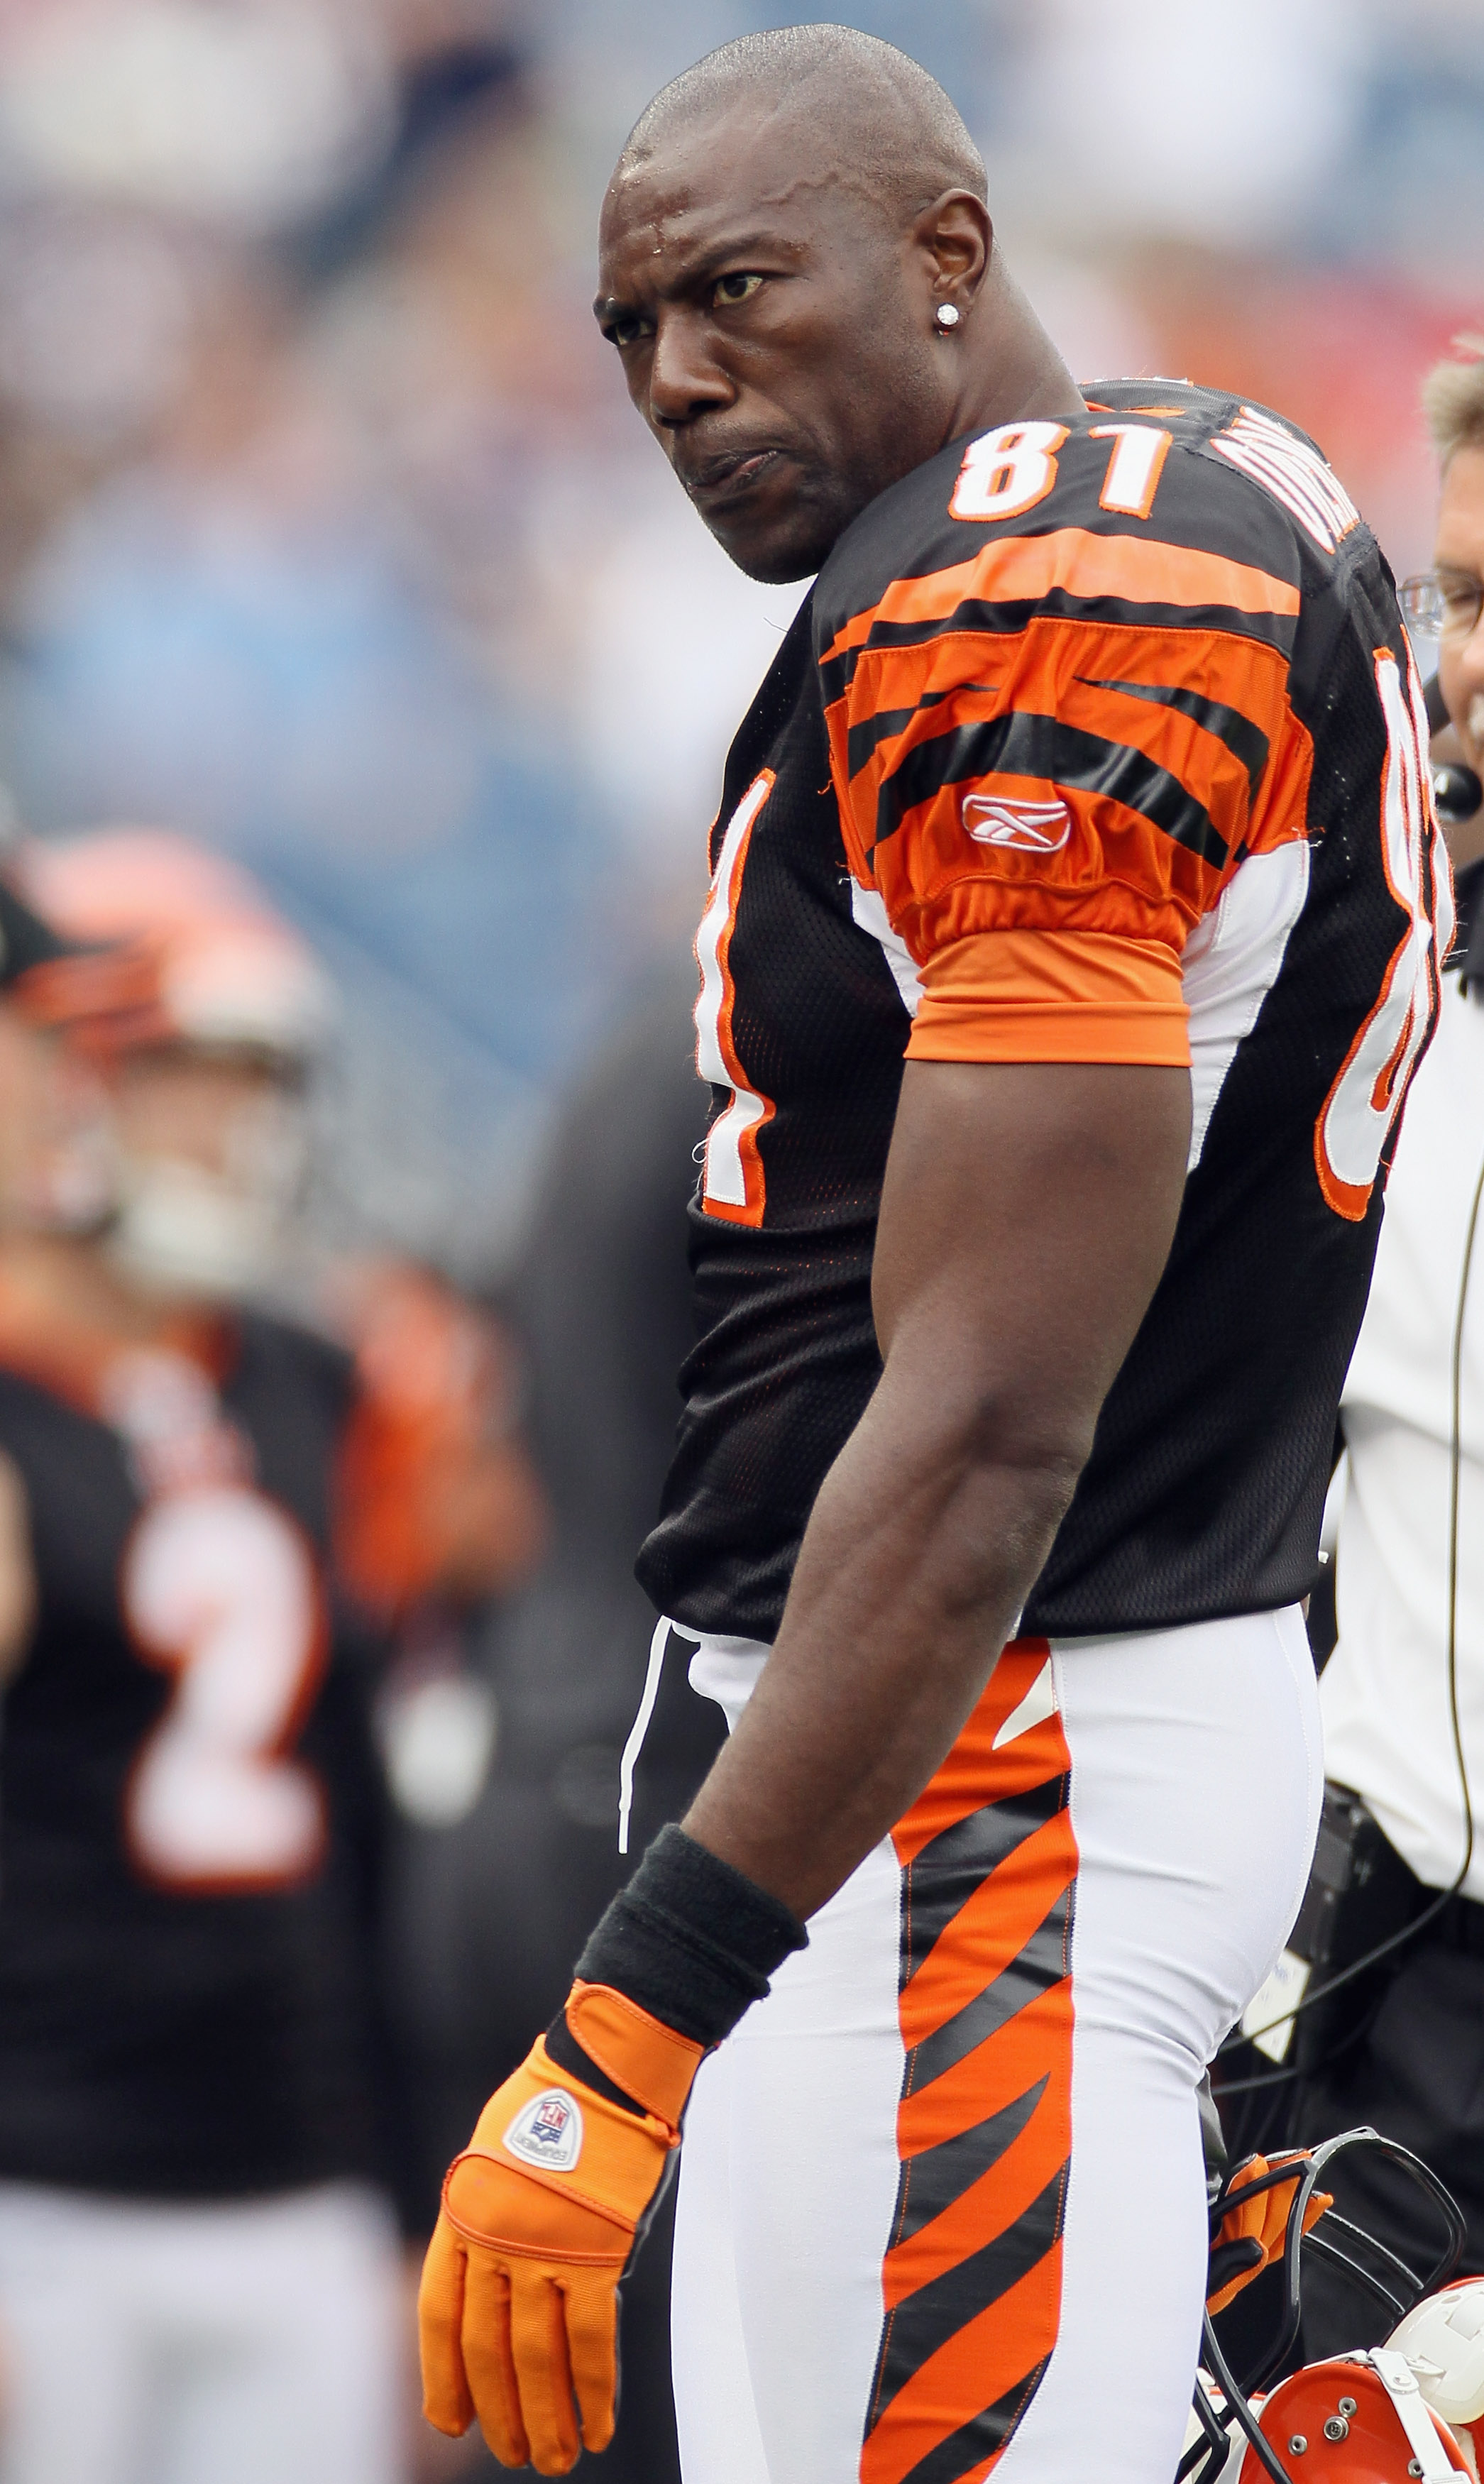 FOXBORO, MA - SEPTEMBER 12:  Terrell Owens #81 of the Cincinnati Bengals walks off the field in the fourth quarter against the New England Patriots during the NFL season opener on September 12, 2010 at Gillette Stadium in Foxboro, Massachusetts. The Patri